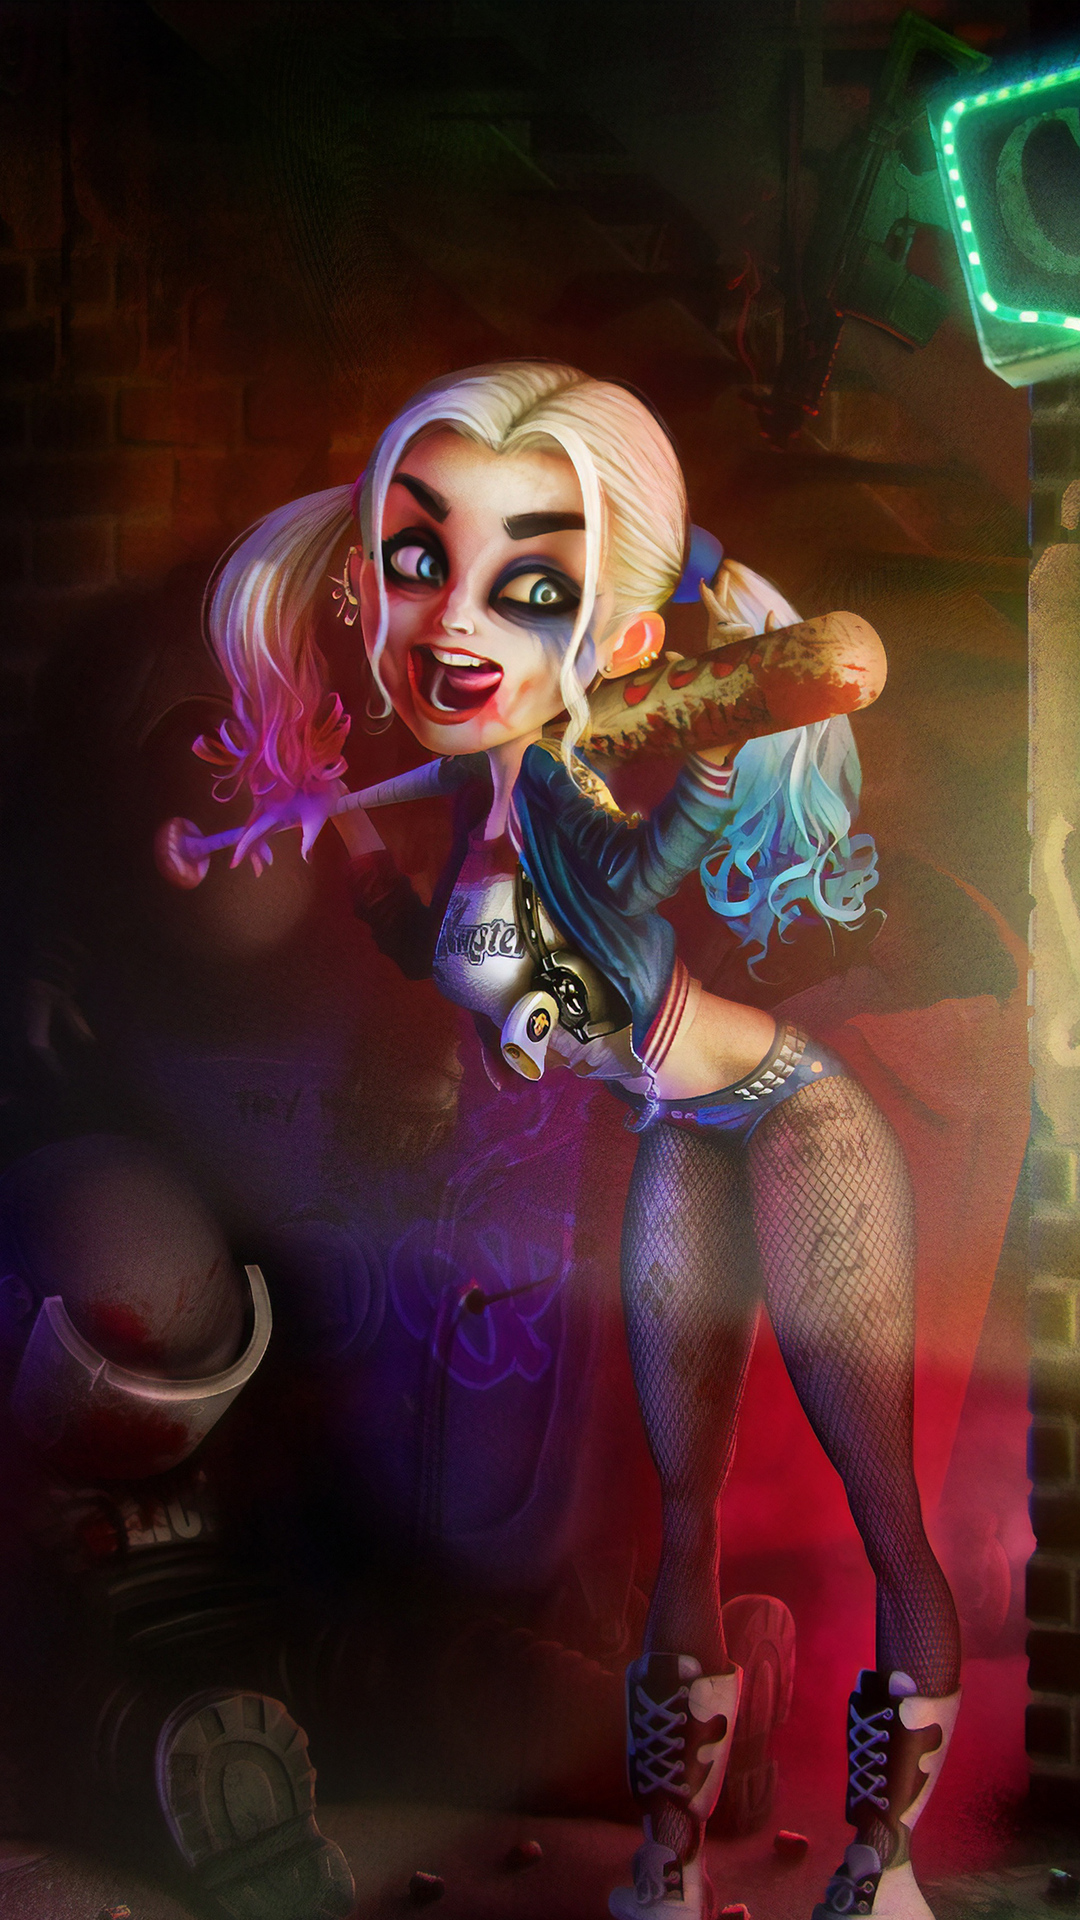 harley-quinn-digital-artwork-lr.jpg